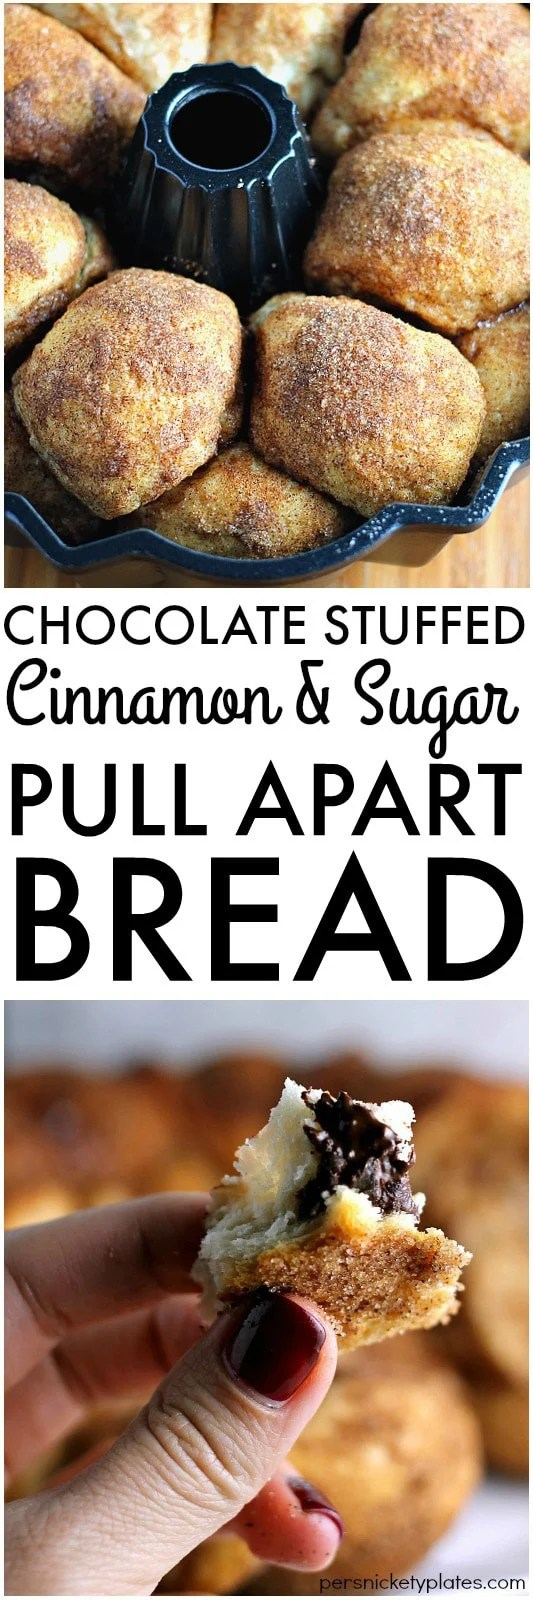 Chocolate Stuffed Cinnamon & Sugar Pull-Apart Bread - a long title for a simple & delicious recipe that only takes 5 ingredients and about 30 minutes to put together. | Persnickety Plates AD #WarmTraditions